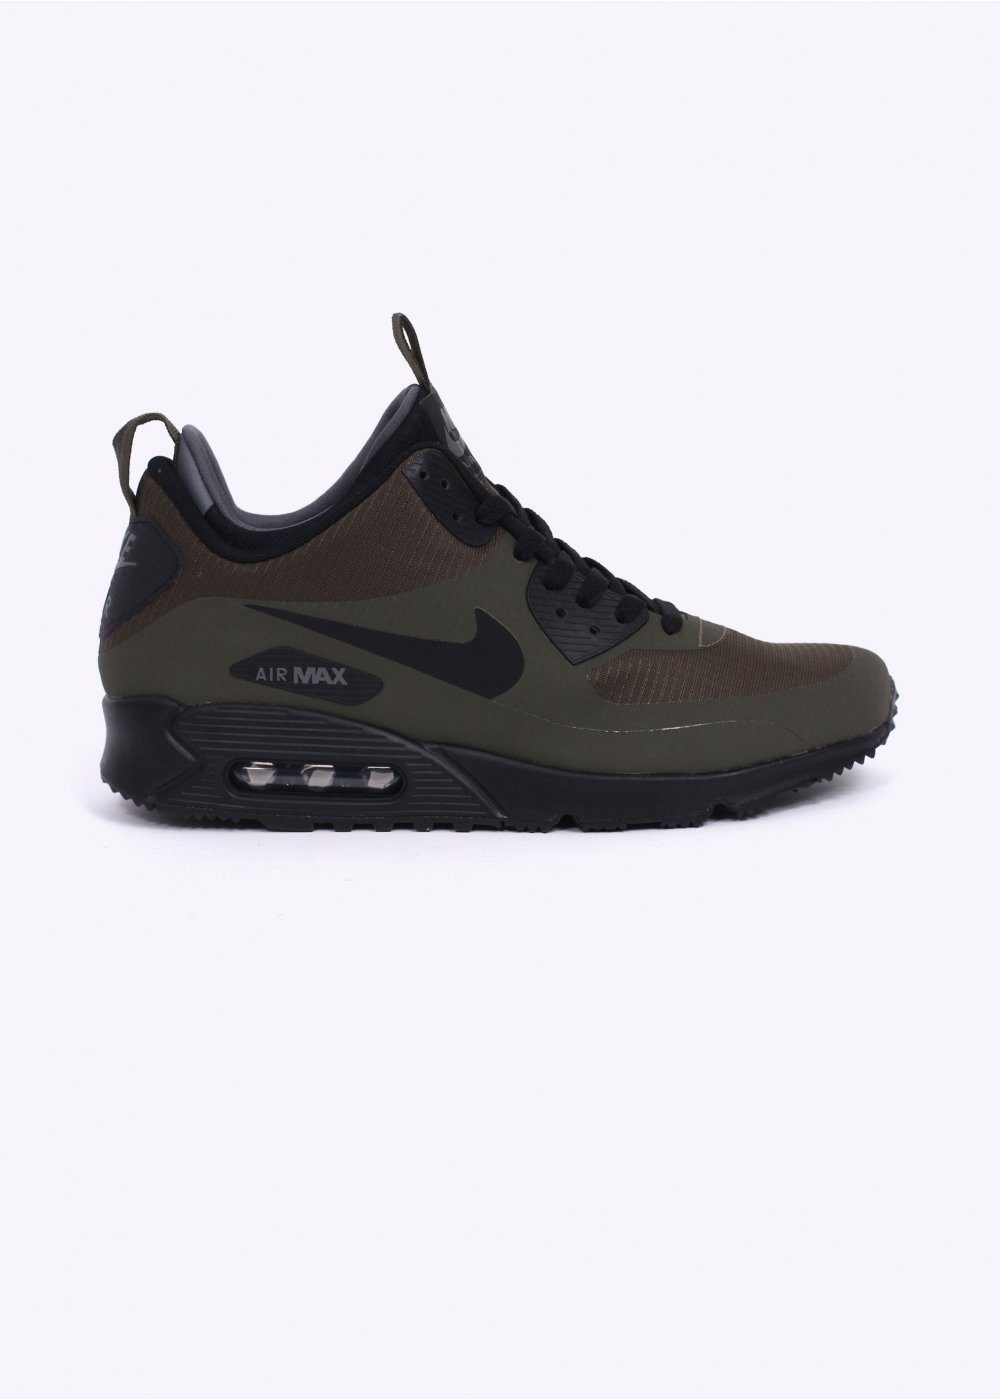 Nike Footwear Air Max 90 Mid Winter Sneakerboots Dark Loden Black